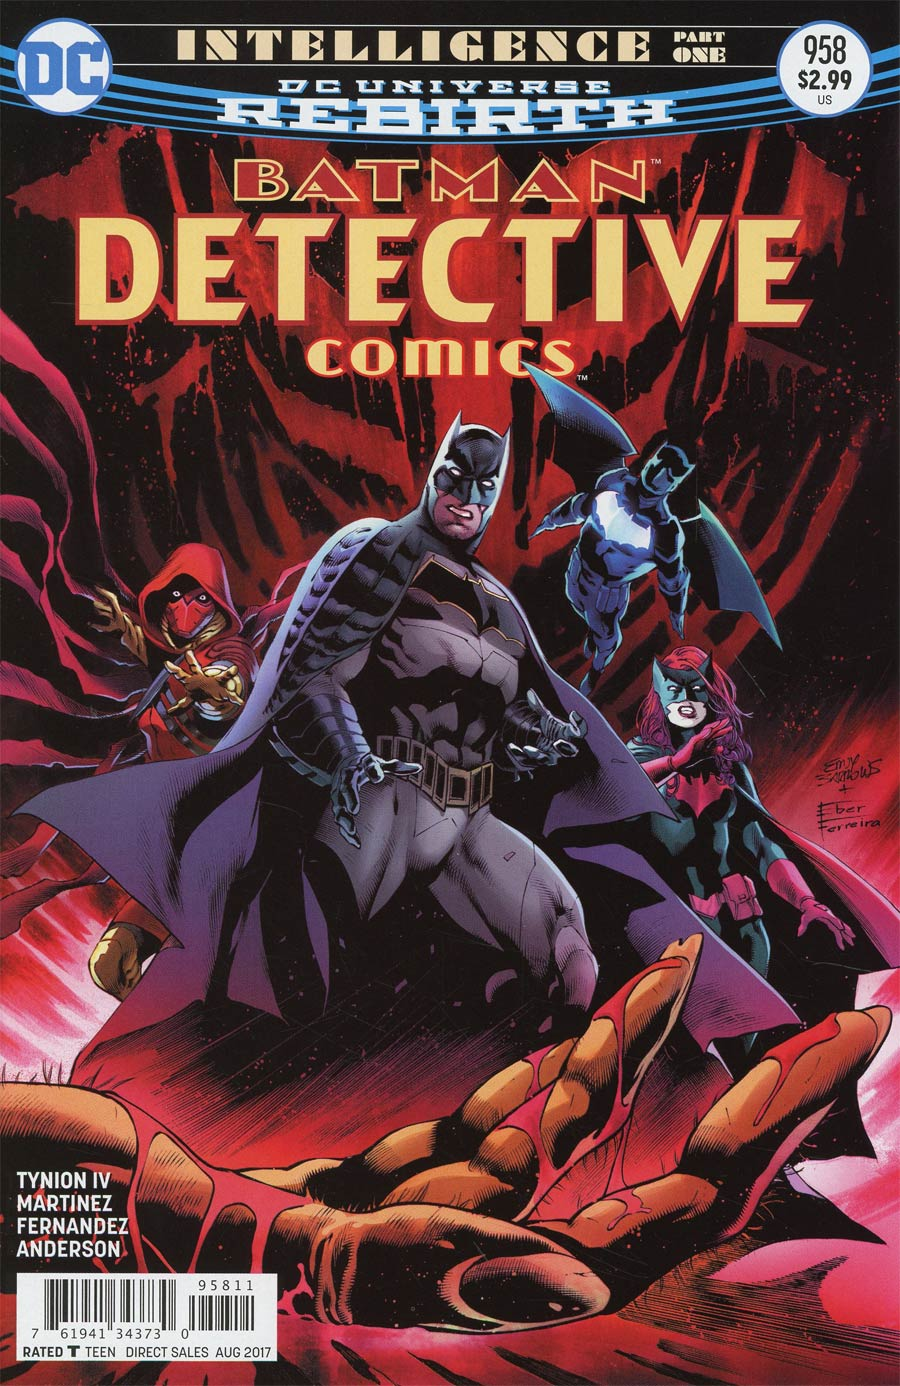 Detective Comics Vol 2 #958 Cover A Regular Eddy Barrows & Eber Ferreira Cover